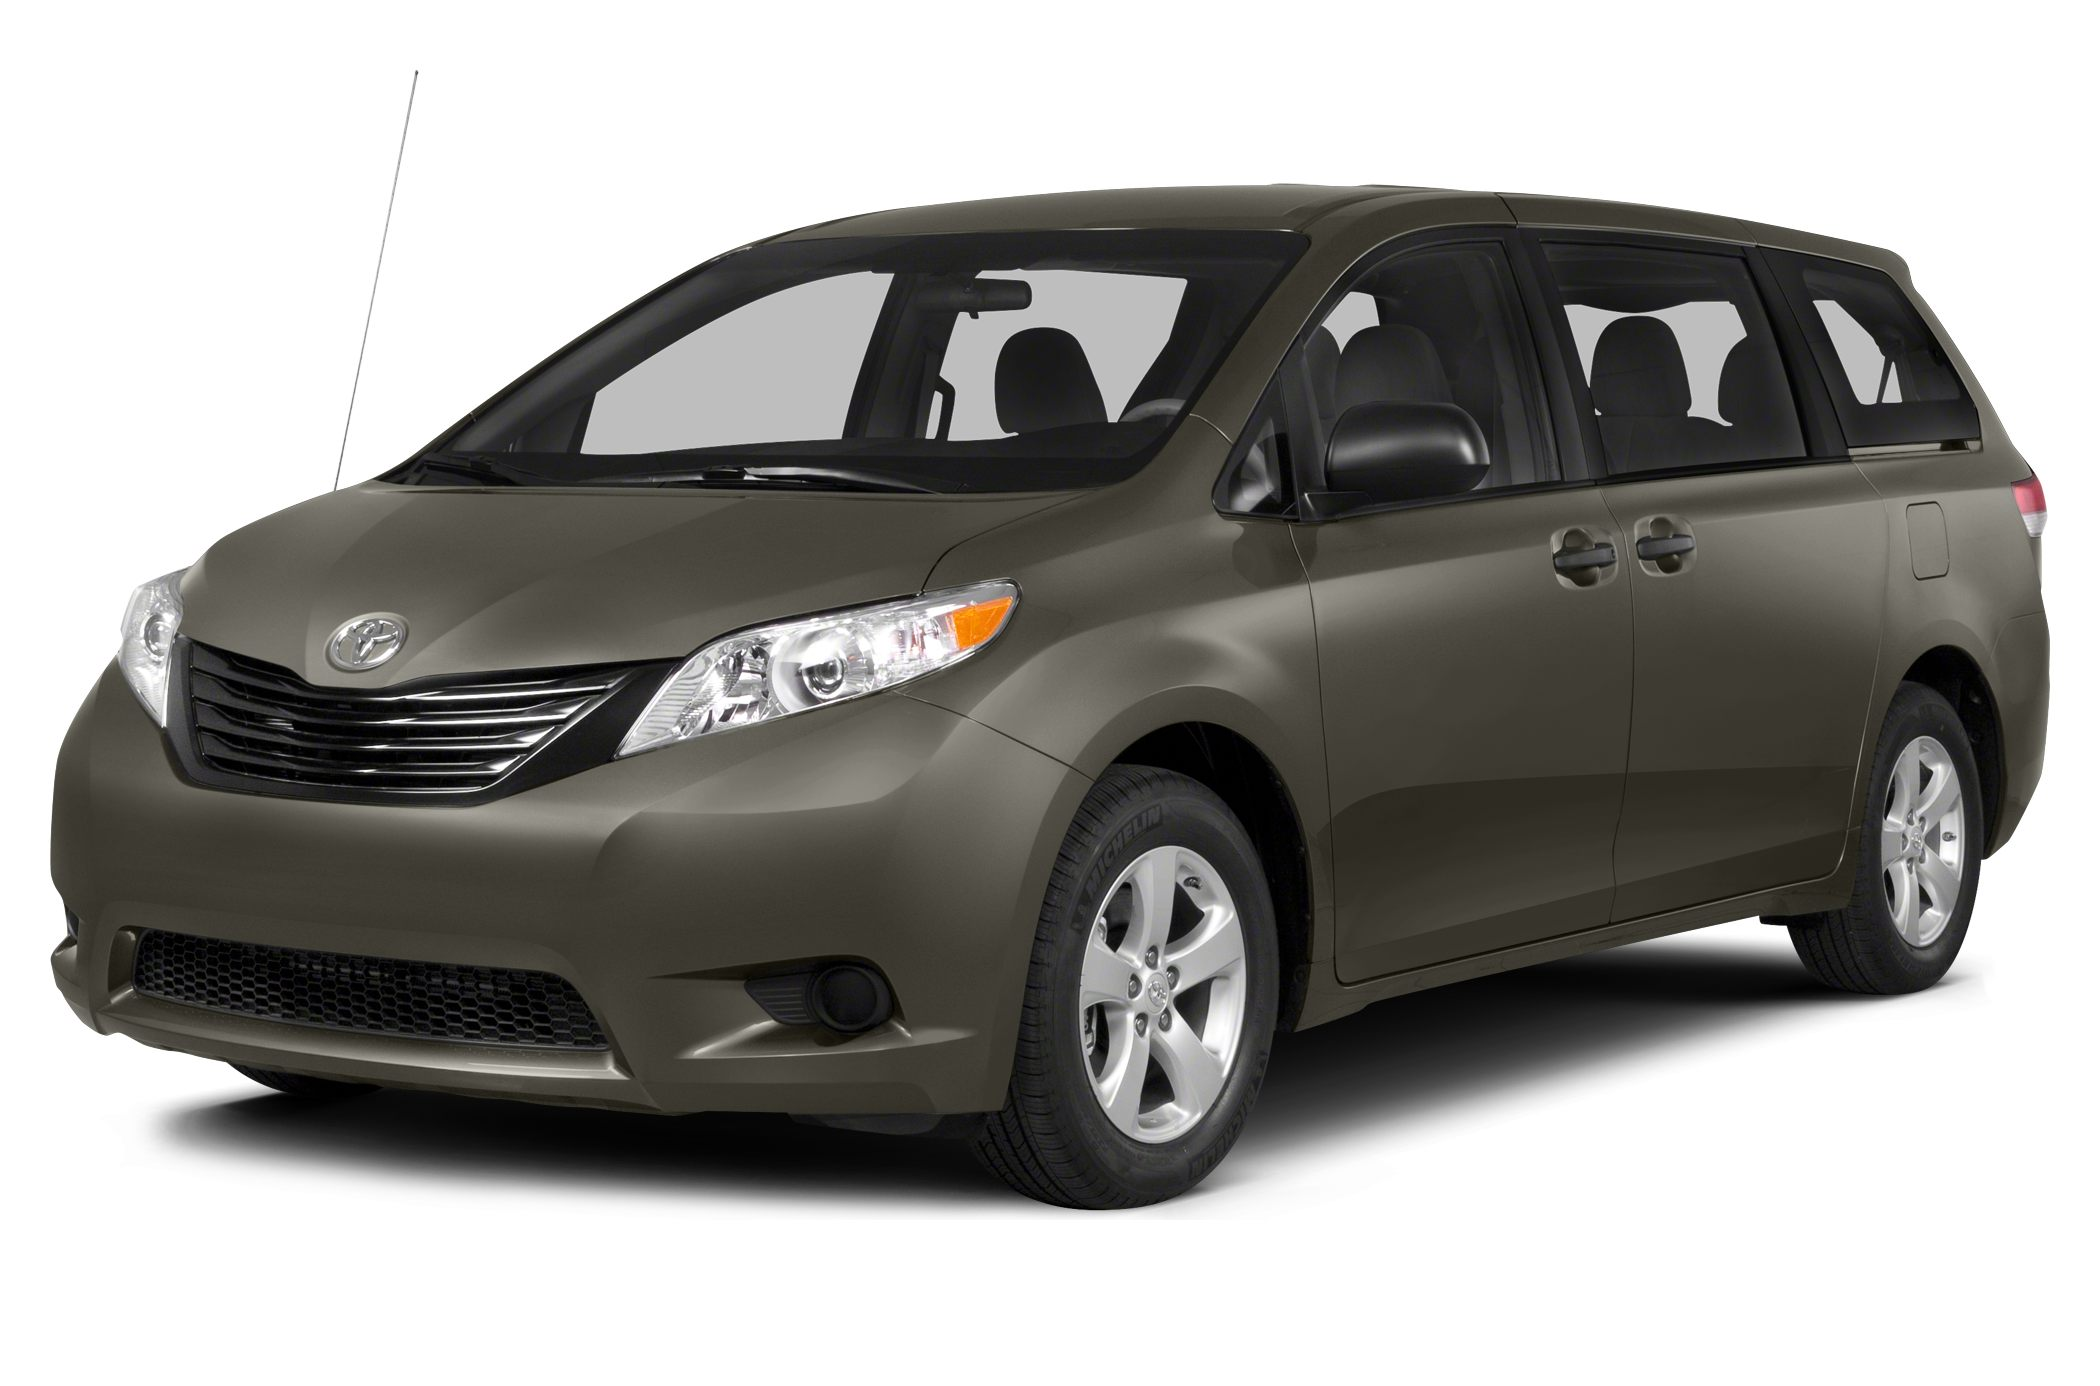 2014 Toyota Sienna Limited 7 Passenger ONE PRICE STOP NO HASSLE NO HAGGLE CAR BUYING EXPERIEN